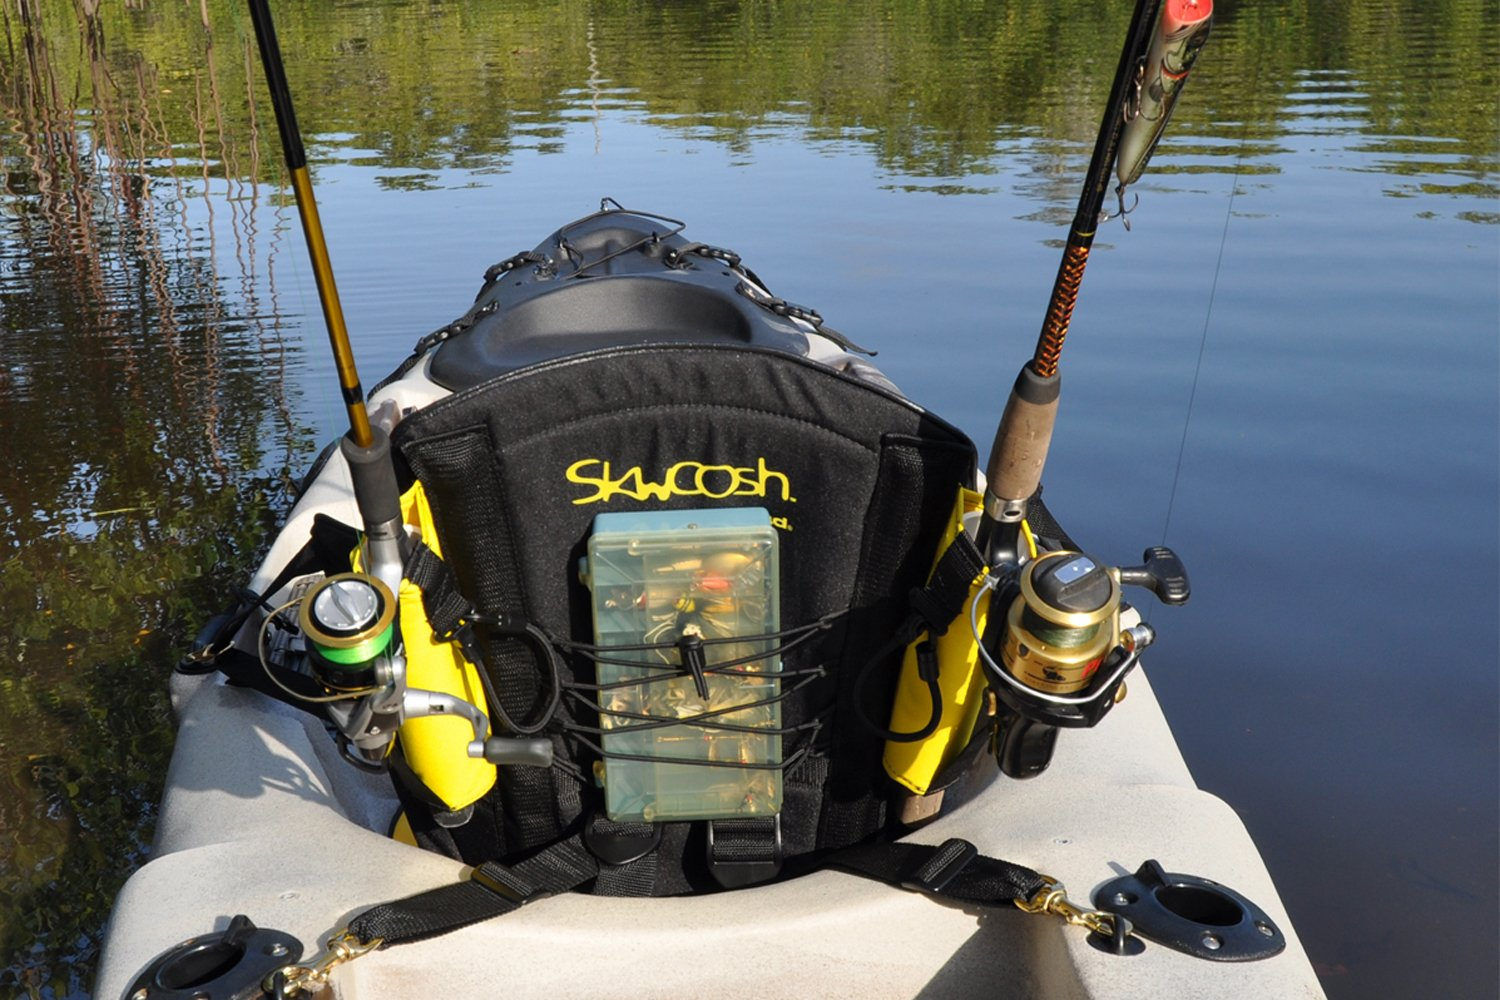 Kayak Fishing Seat for Anglers Fishermen 20'' High Back Support with Lumbar Roll and Nylon gel seat for Big Catch kayaking comfort